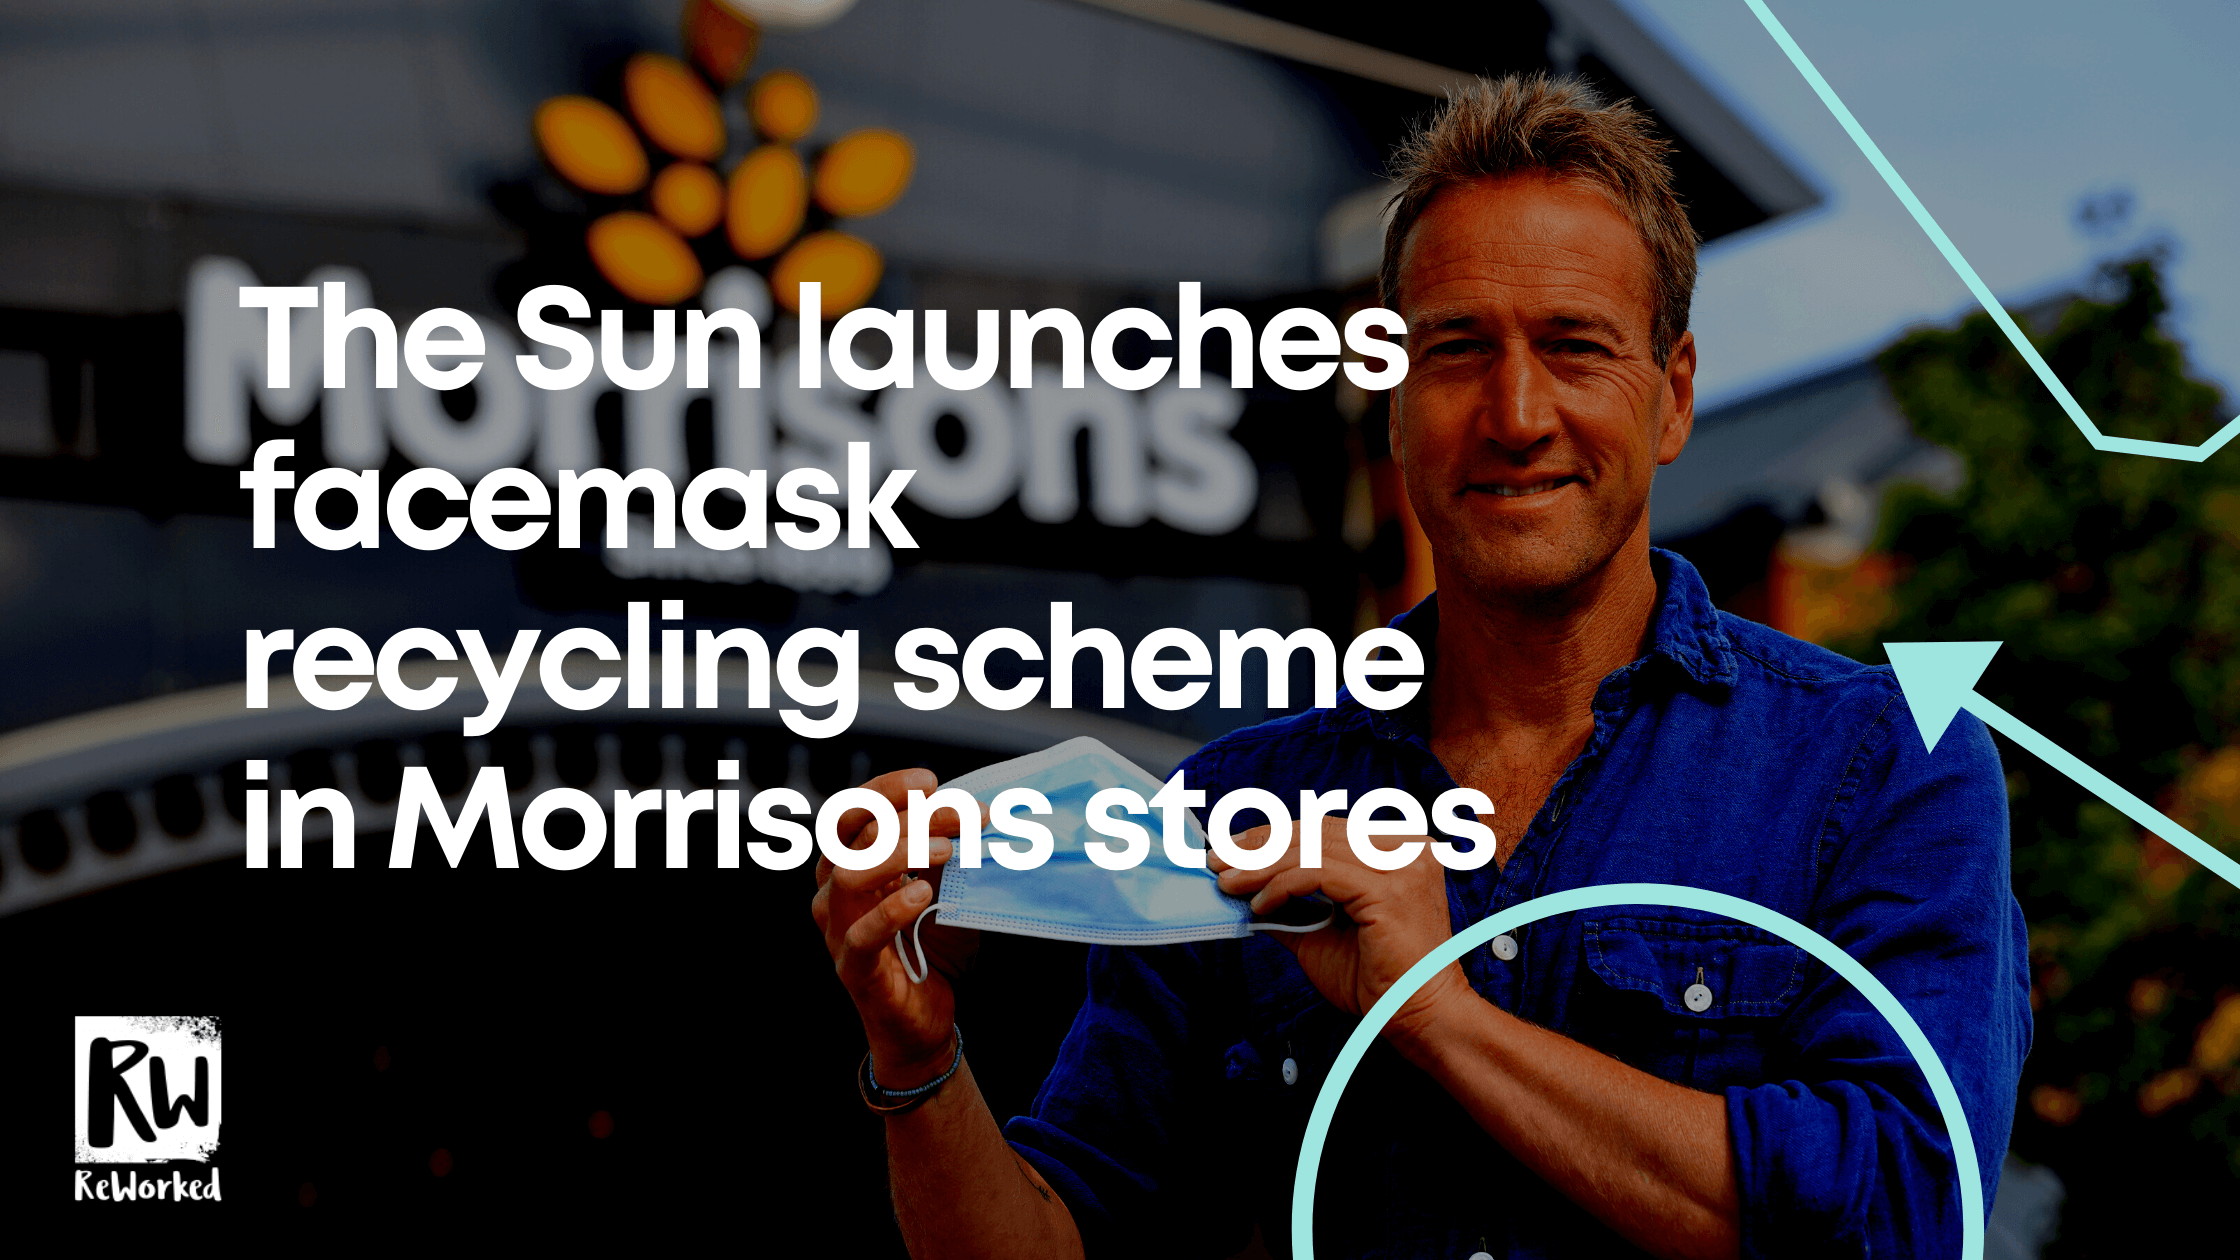 The Sun launches facemask recycling scheme in Morrisons stores